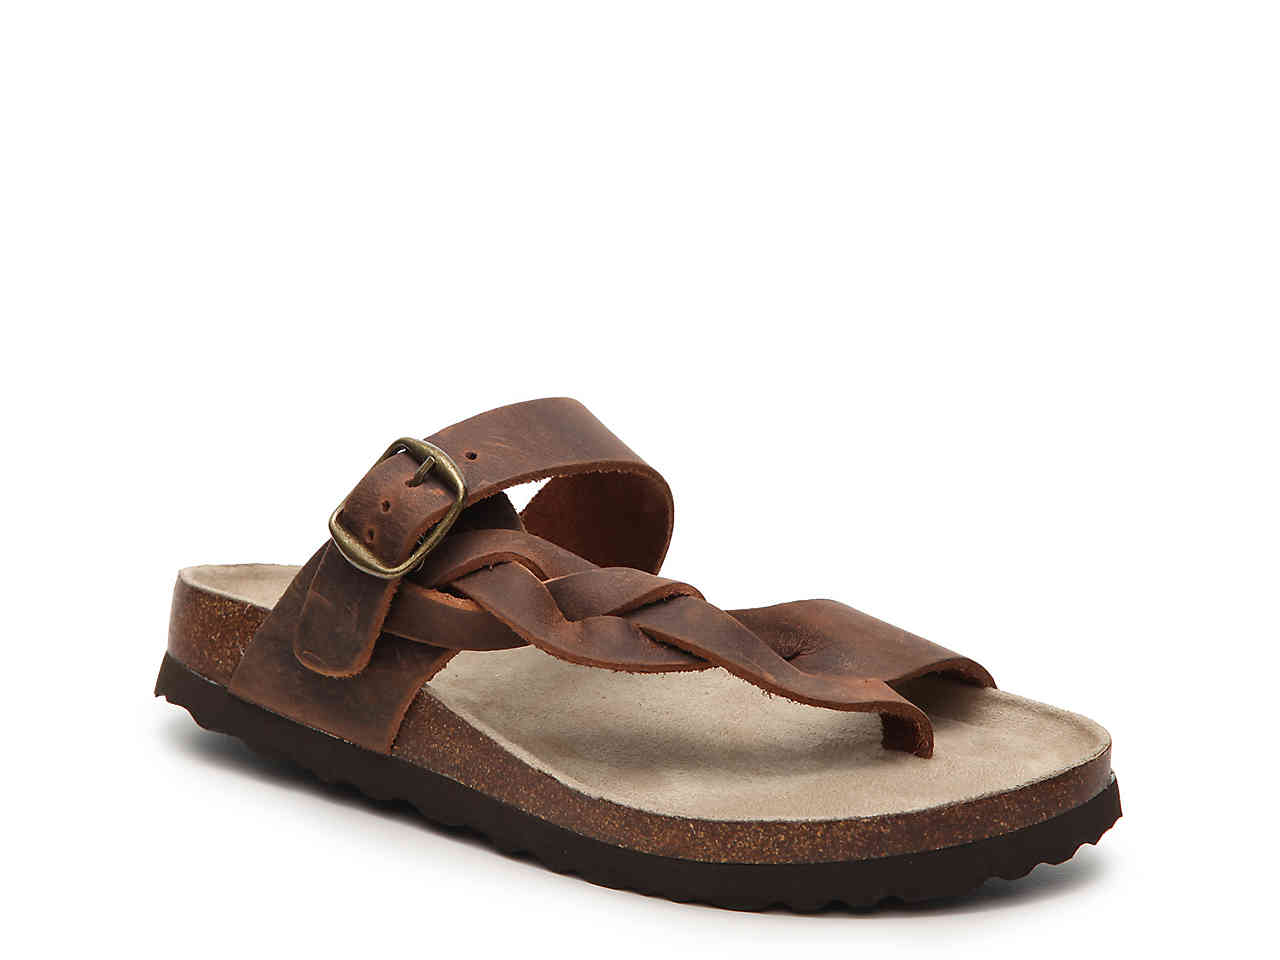 335337164a1 16 Birkenstock Look-Alikes You Can Actually Afford – SheKnows